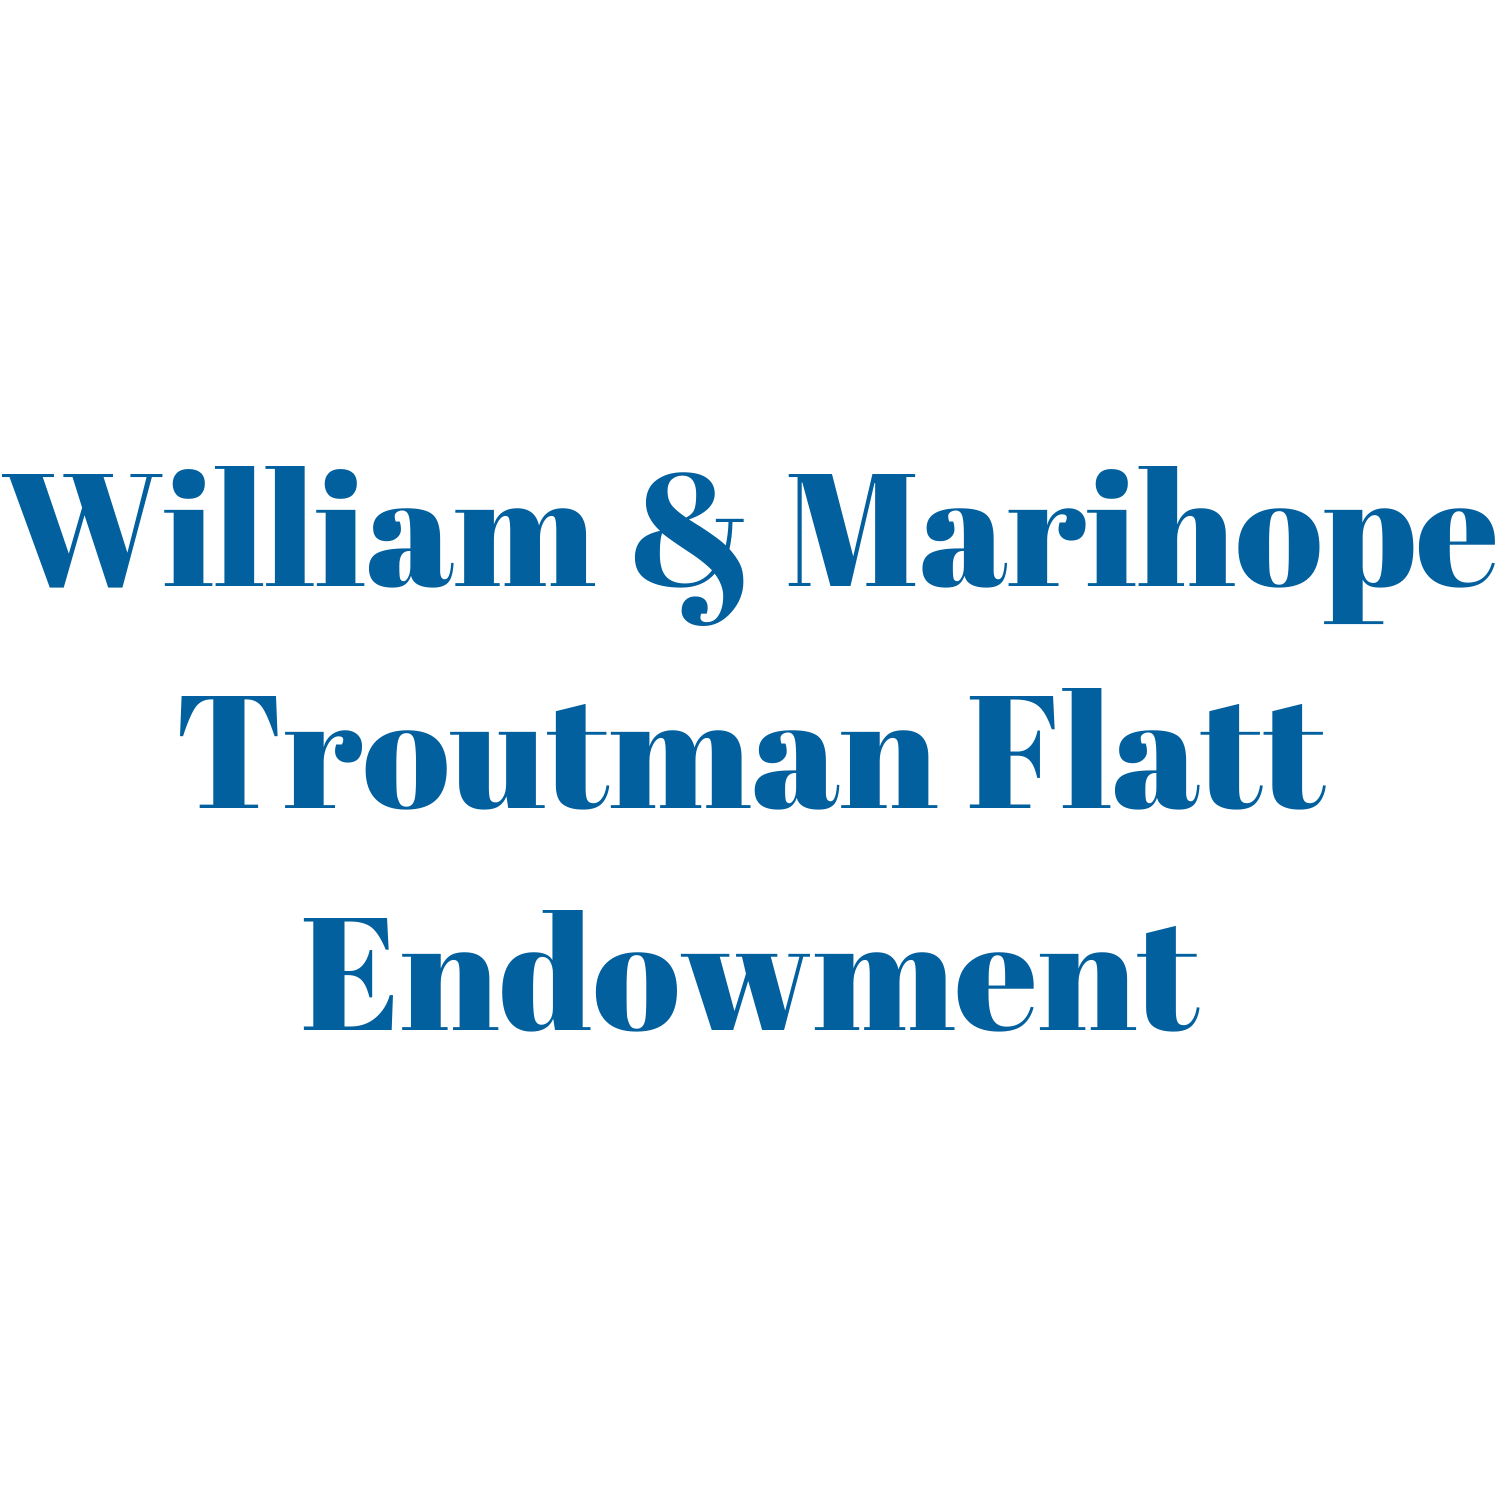 William & Marihope Troutman Flatt Endowment